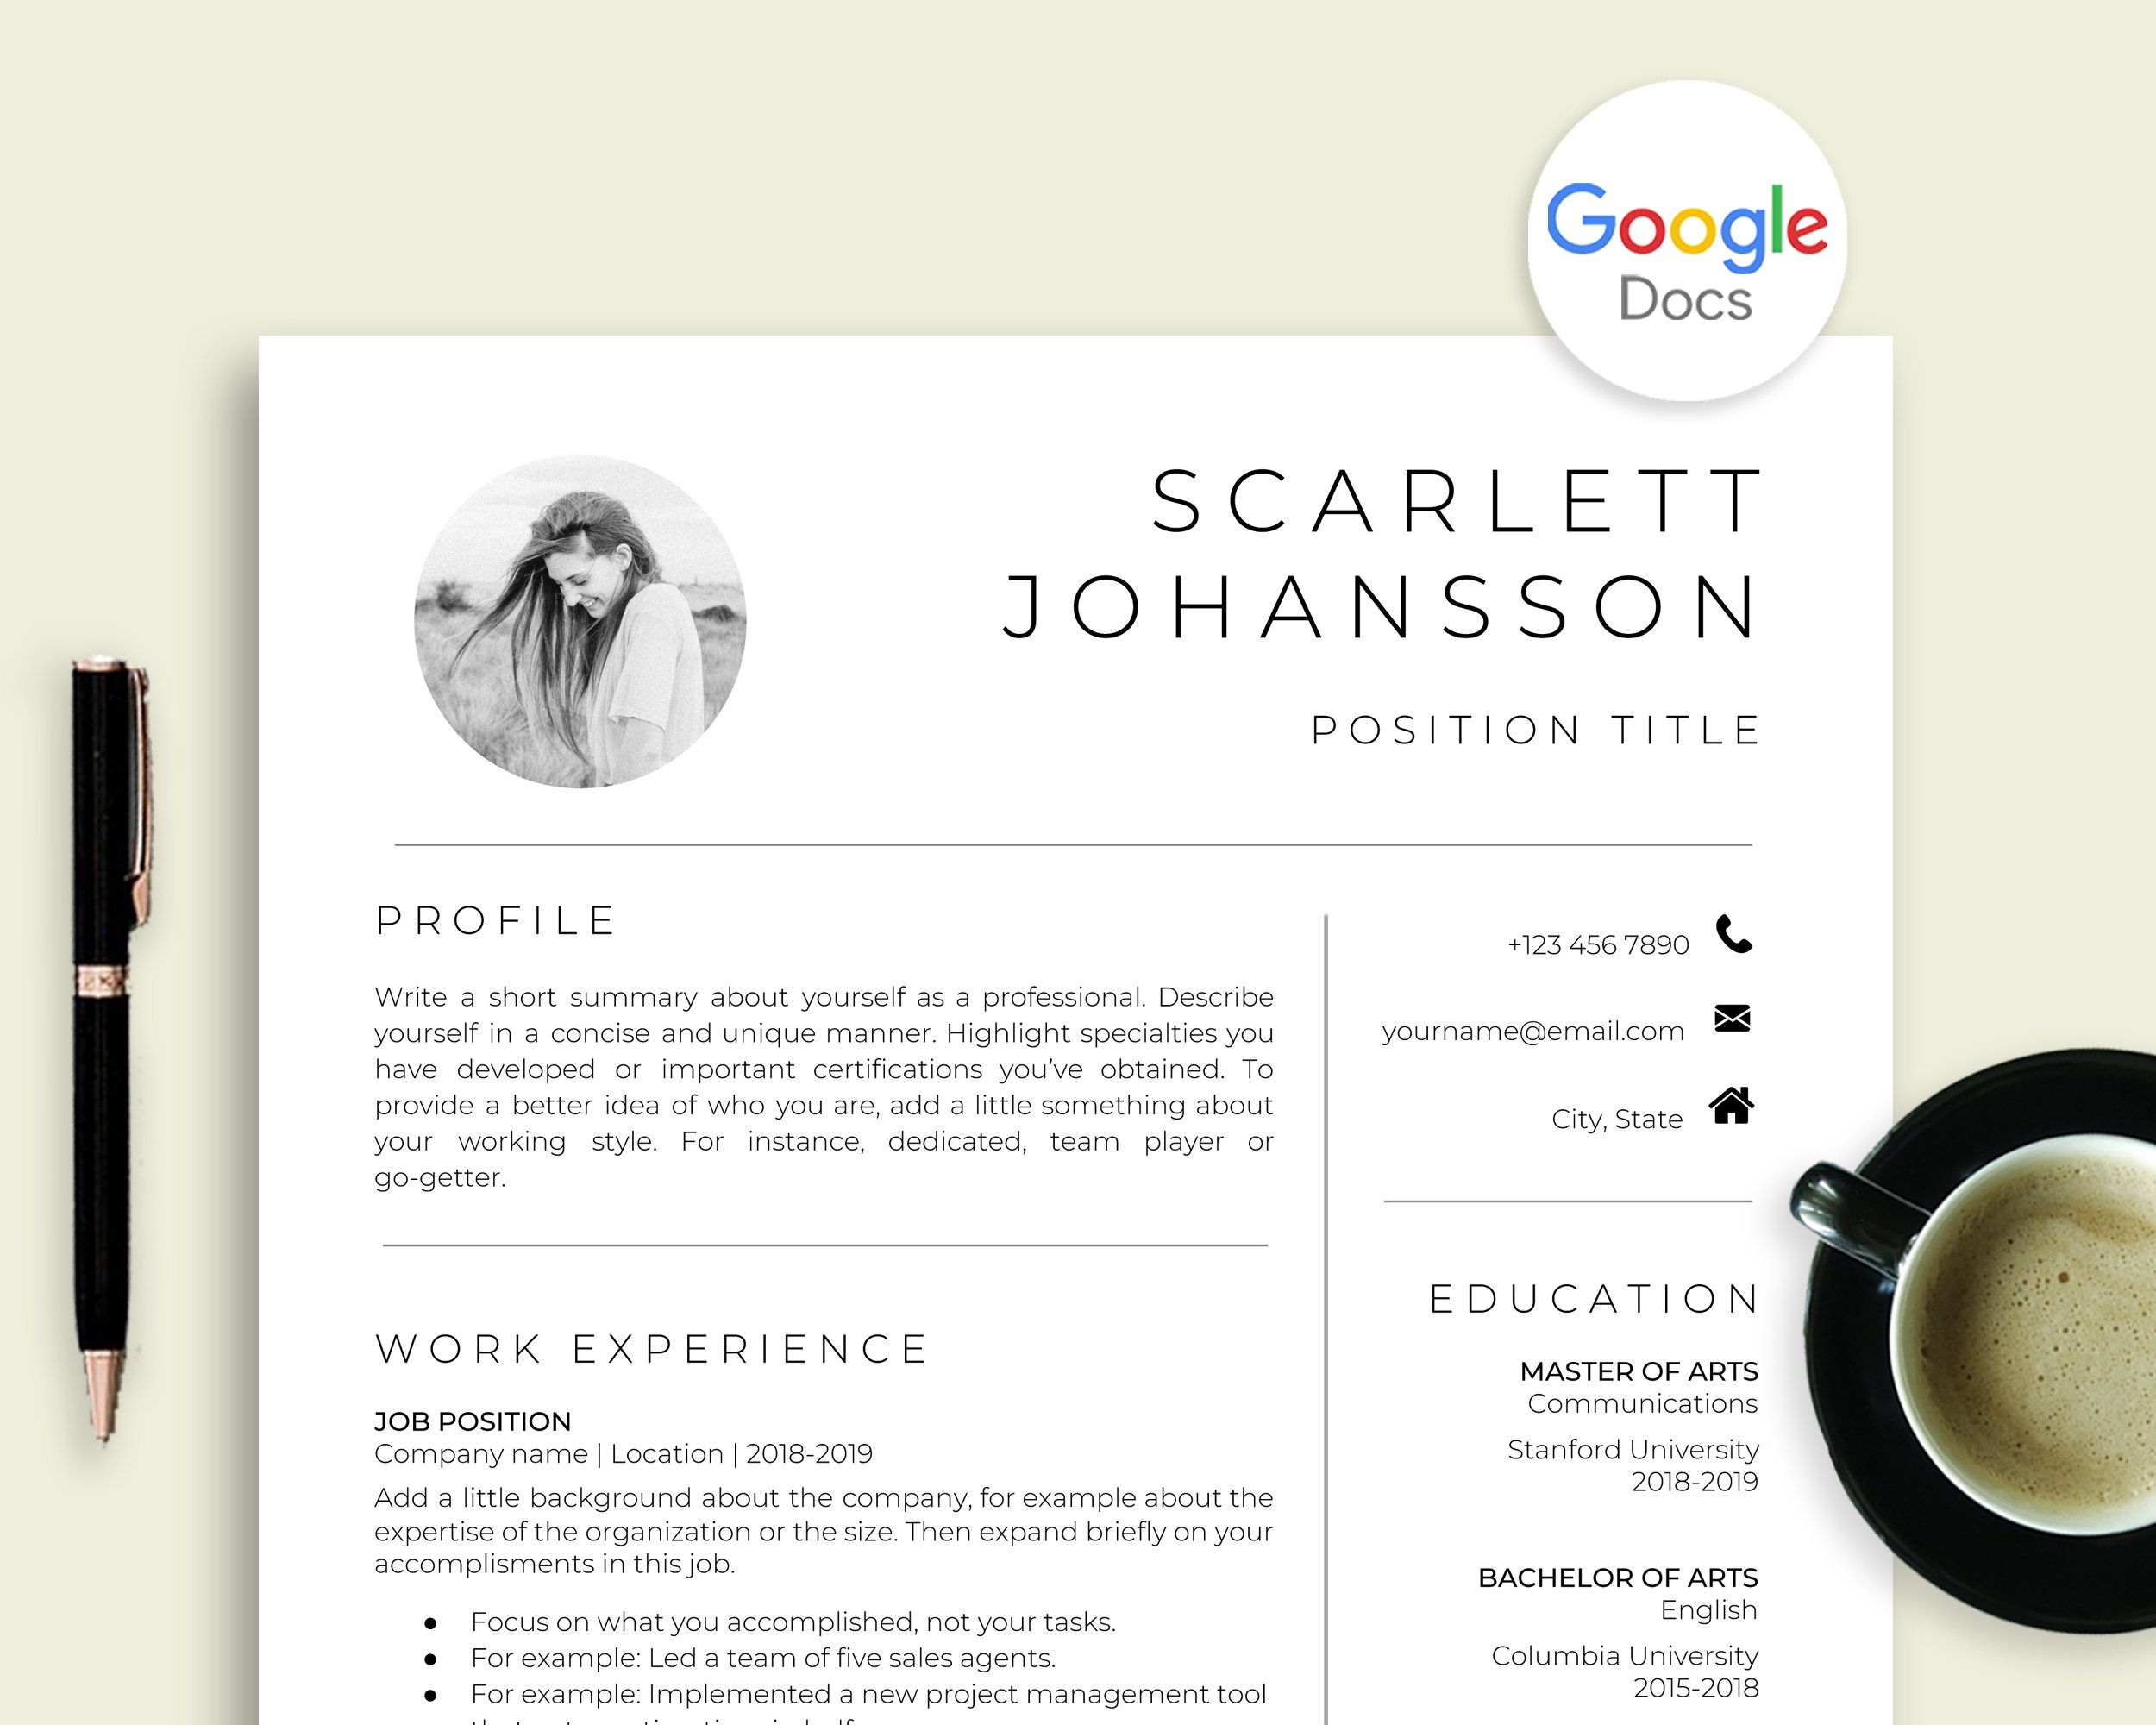 Google Docs Resume Template with Picture, Photo Resume